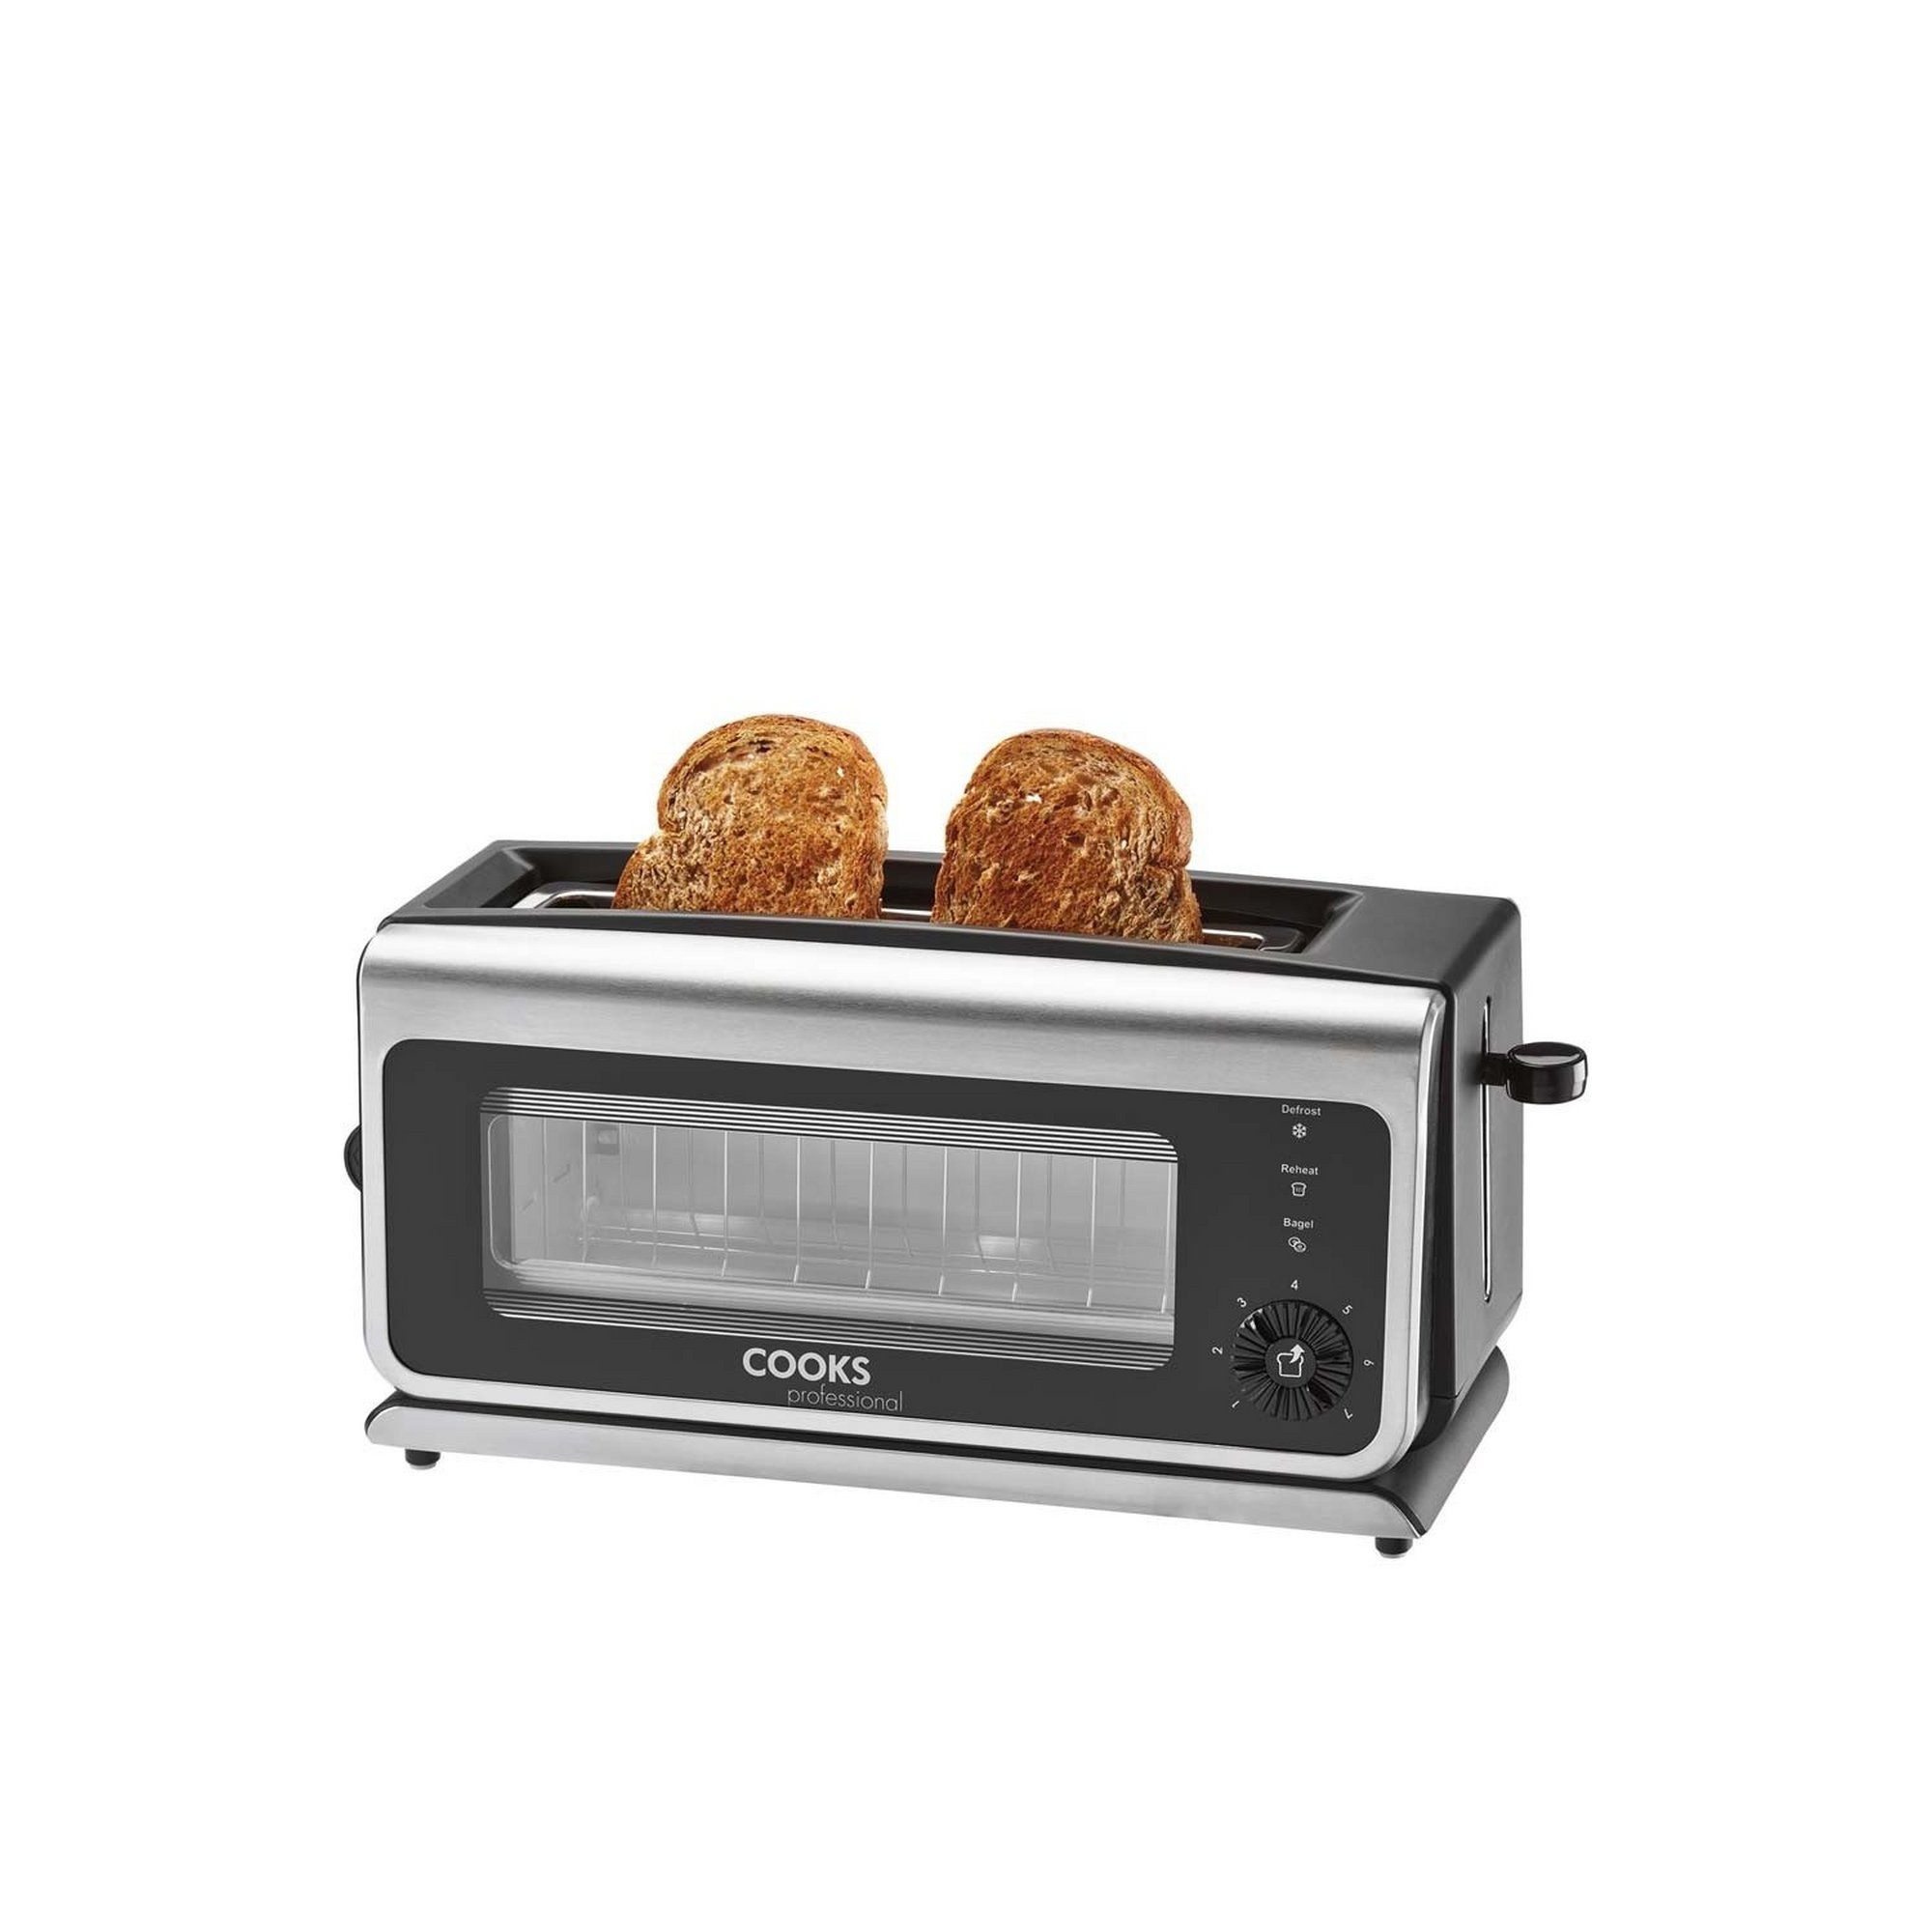 Image of Cooks Professional Glass Toaster